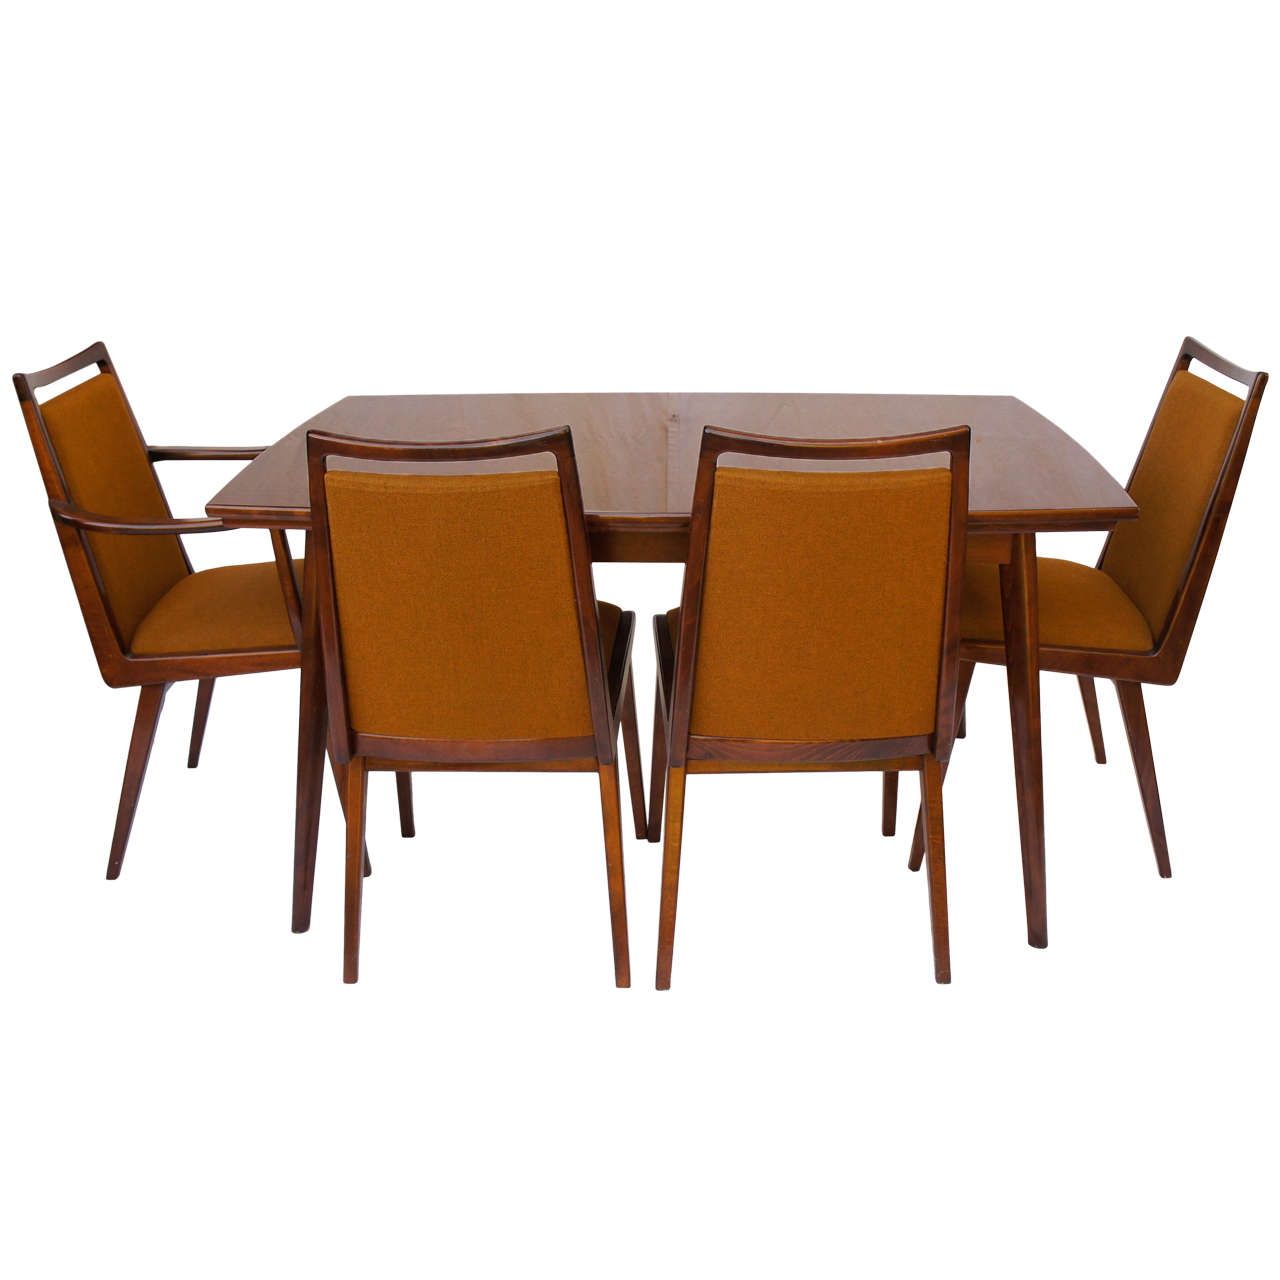 Mid Century Dining Set: German Mid Century Dining Set With 6 Chairs By Habeo At